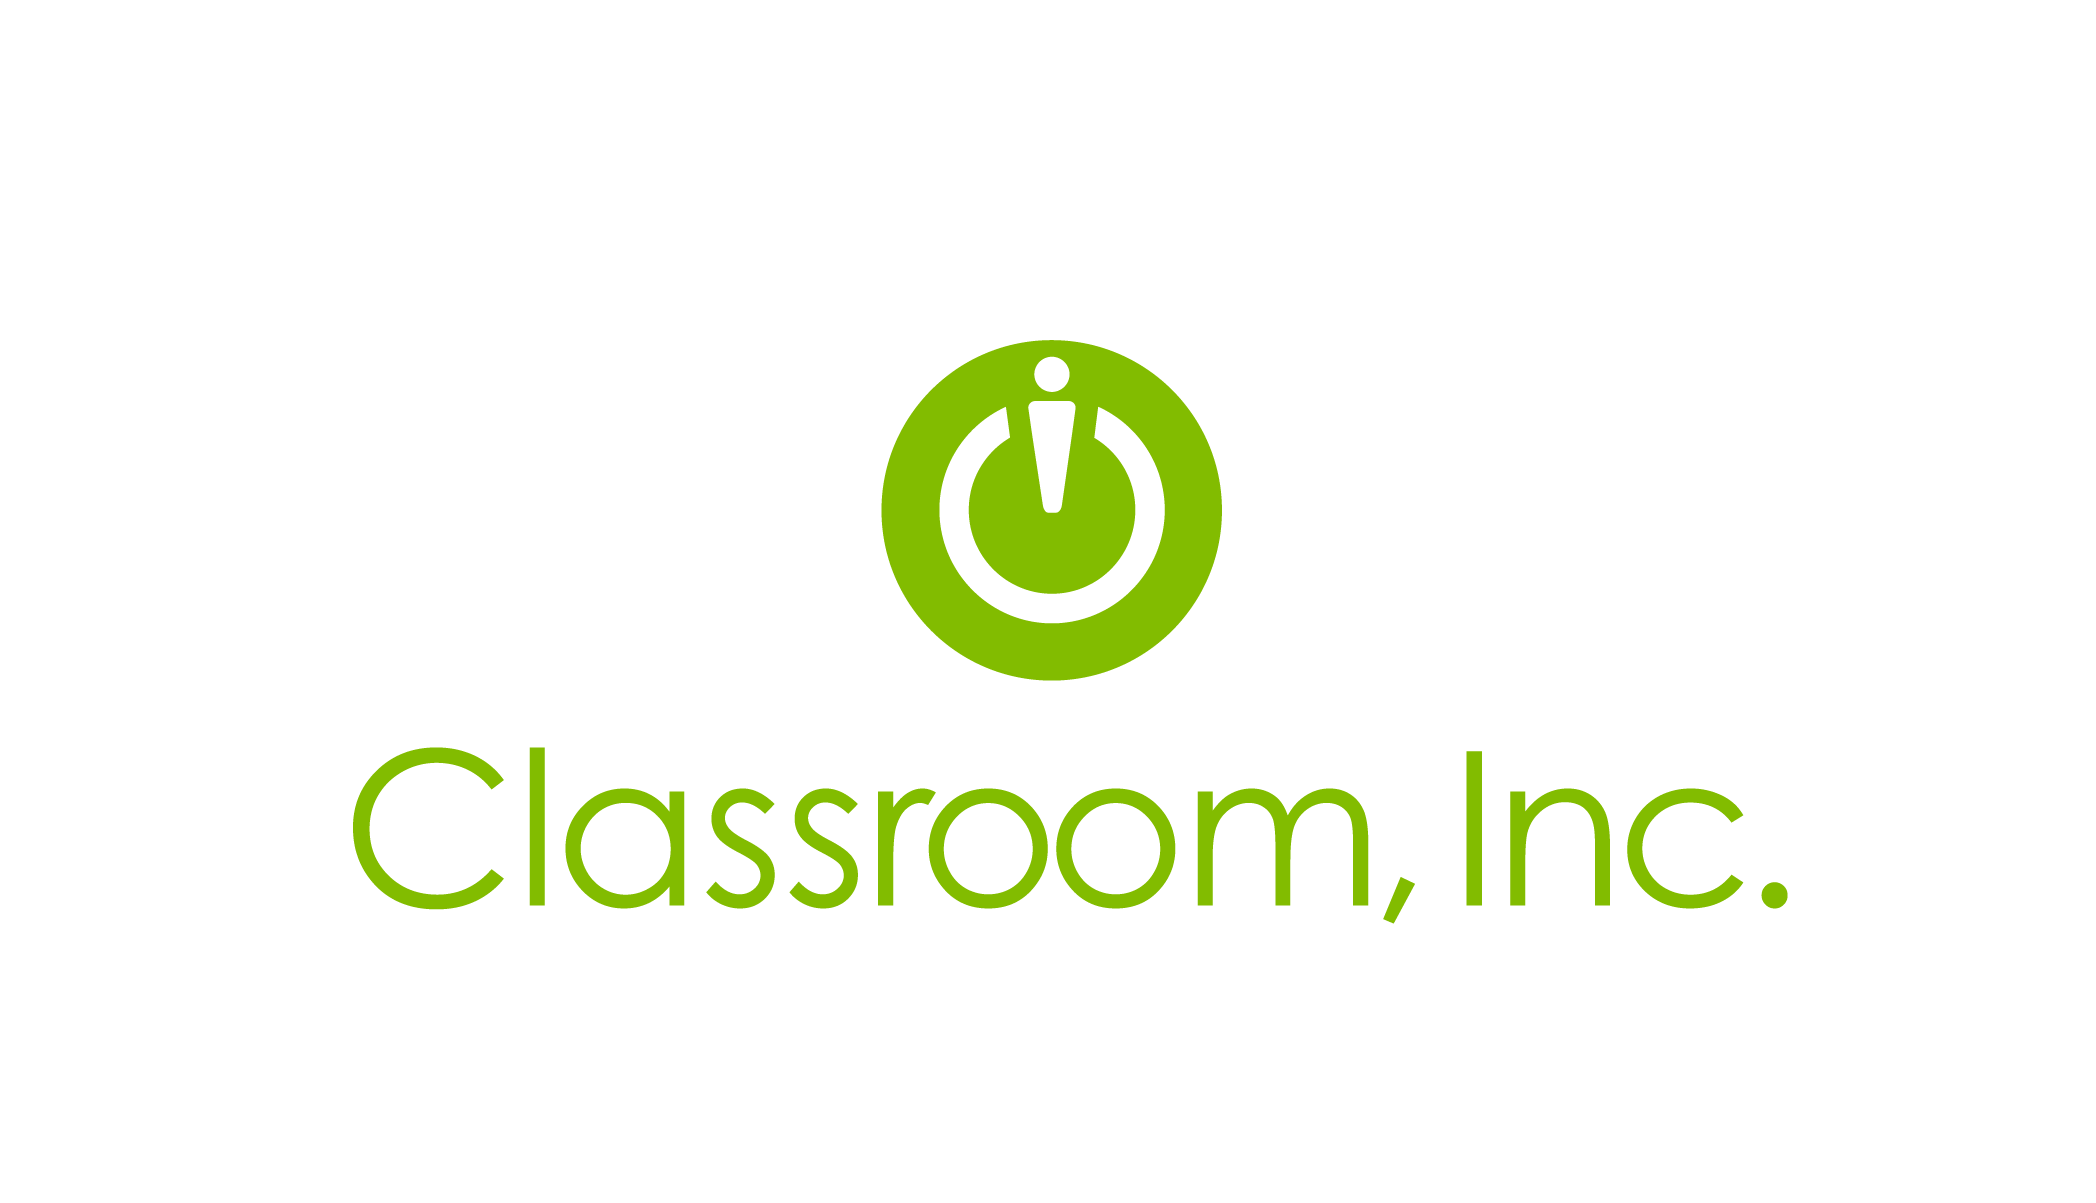 http://www.classroominc.org/about/mission